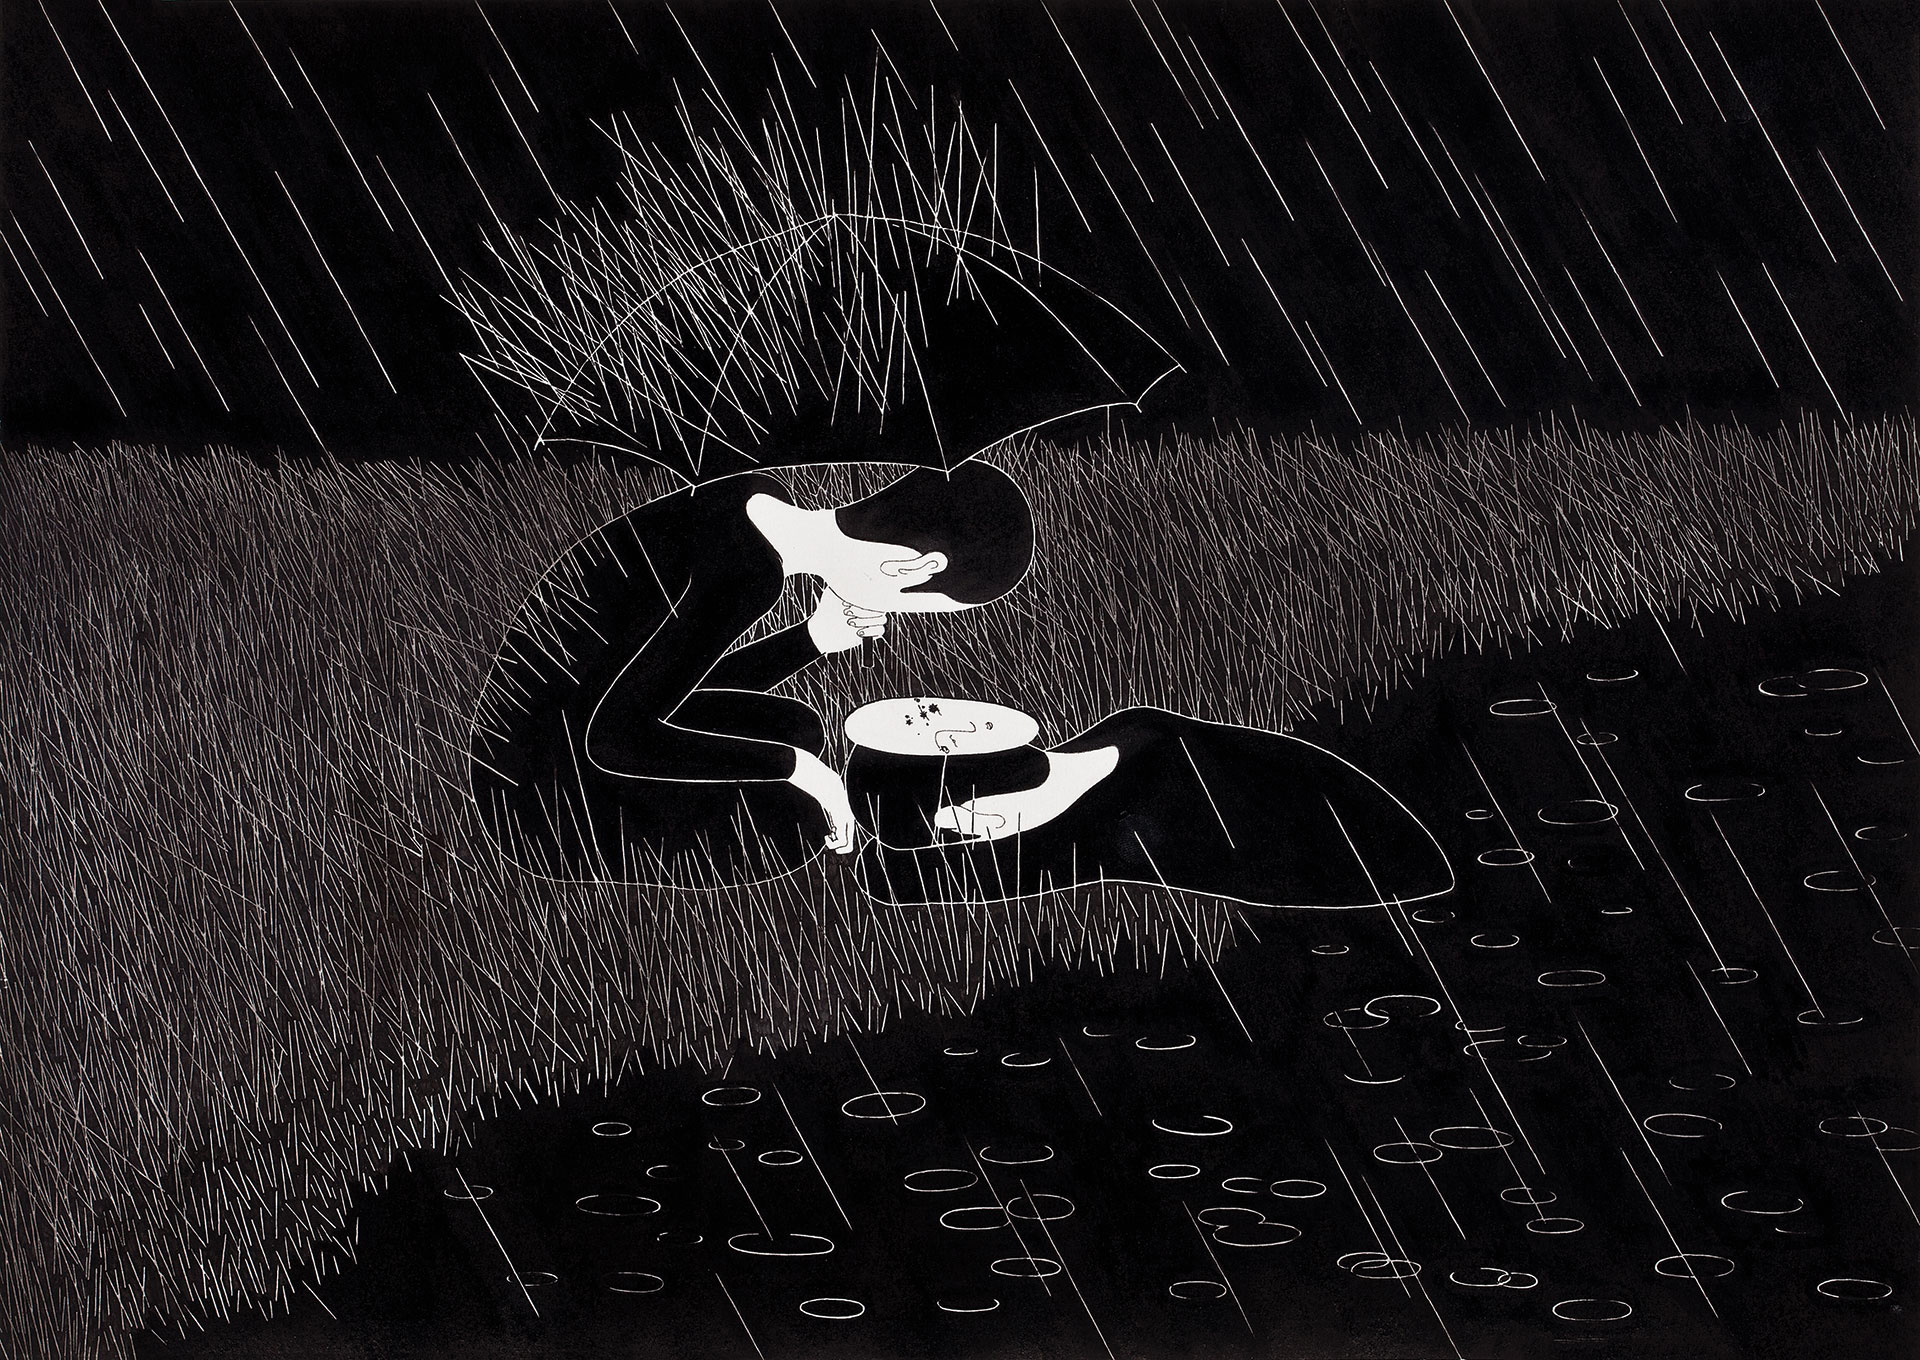 비와   /   The rain comes whenever I wish   Op. 0061C - 42 x 29.7 cm, 종이에 펜, 마커, 잉크 / Pigment liner, marker, and ink on paper, 2012